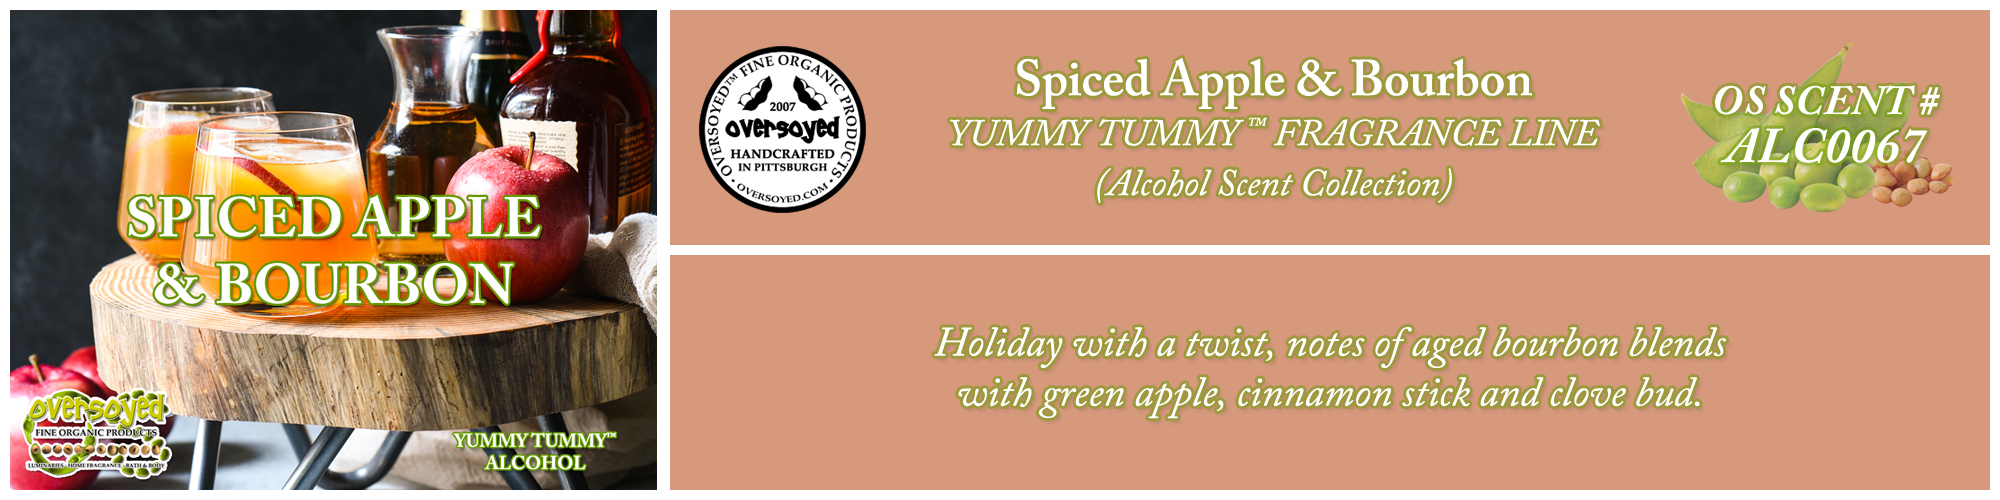 Spiced Apple & Bourbon Handcrafted Products Collection